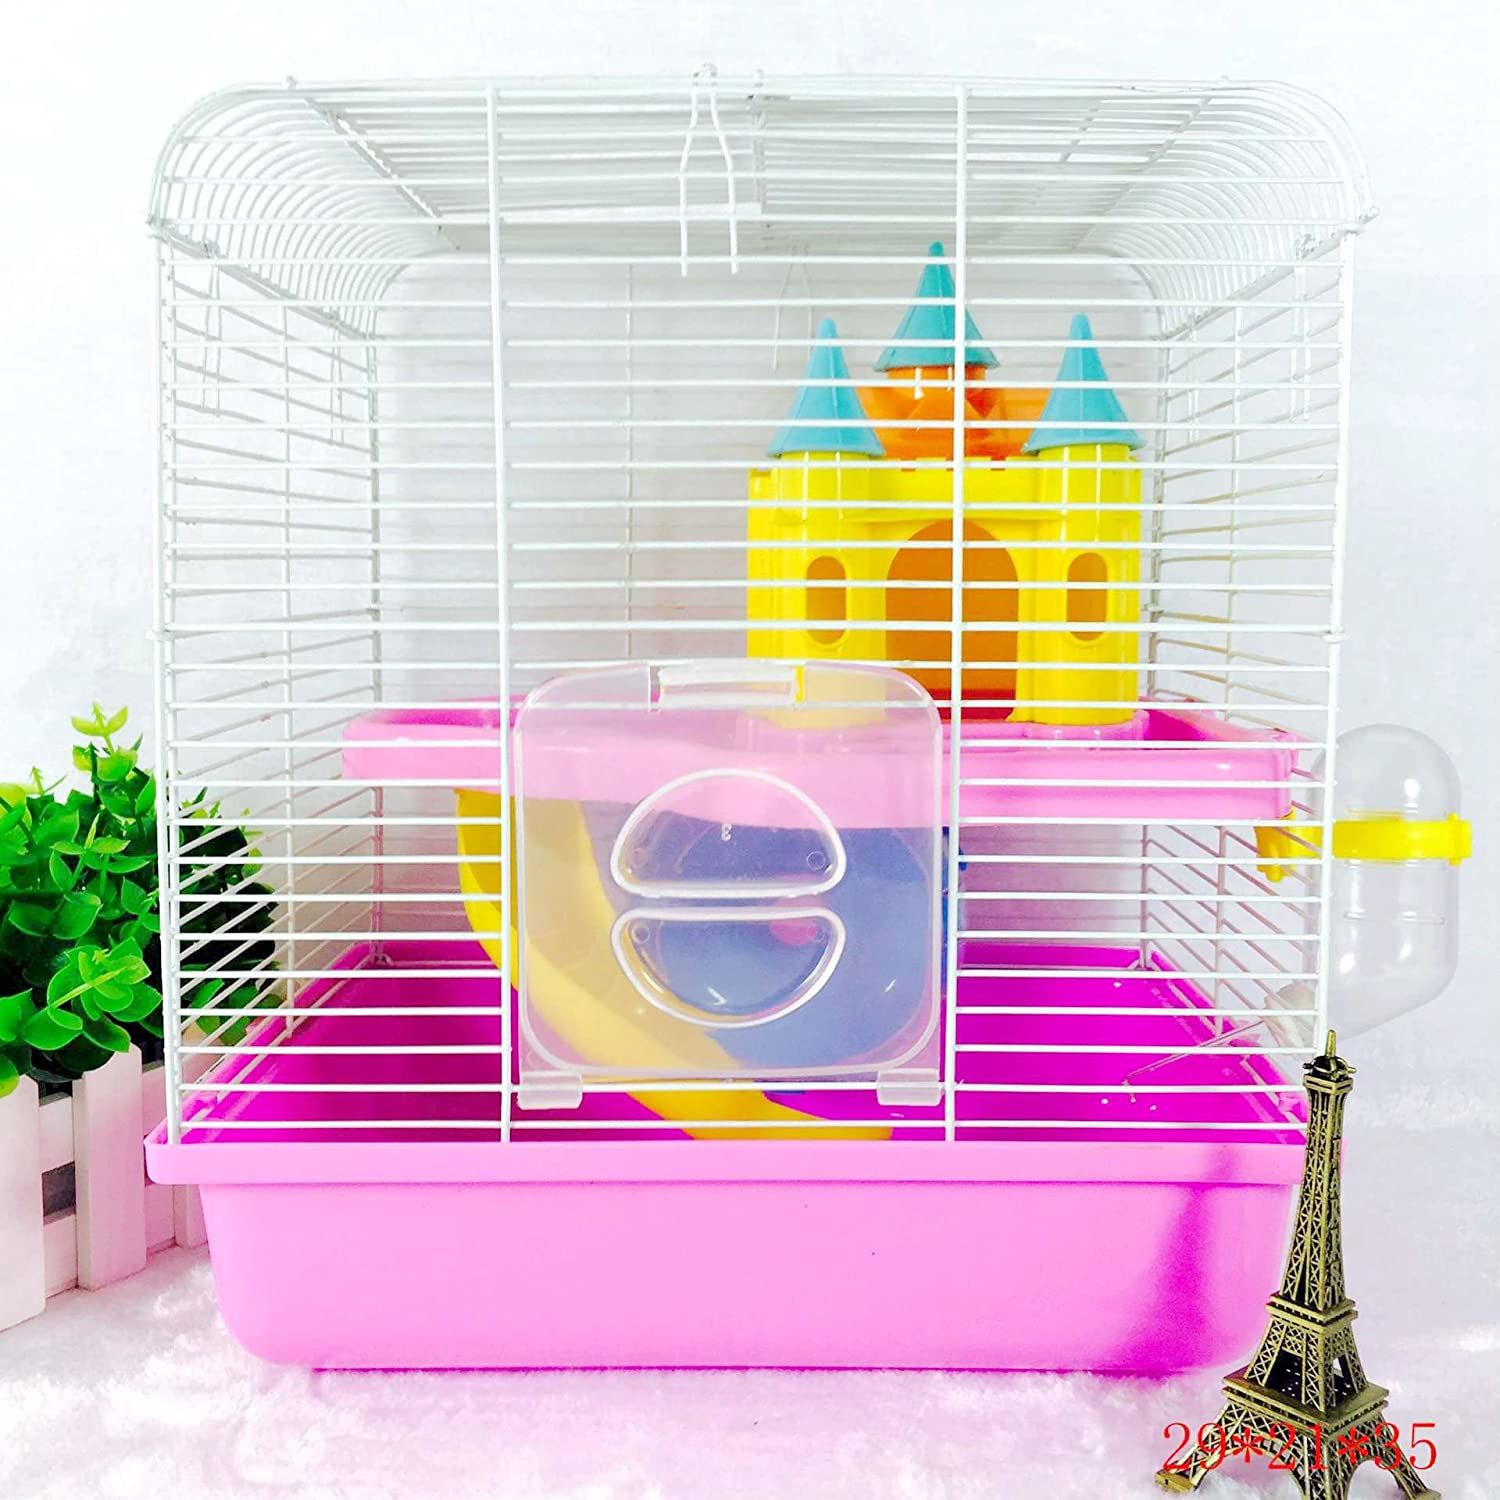 ESOCOME Pet Supplies Double Layer Hamster Small Castle Animal Couple Cage and Habitat